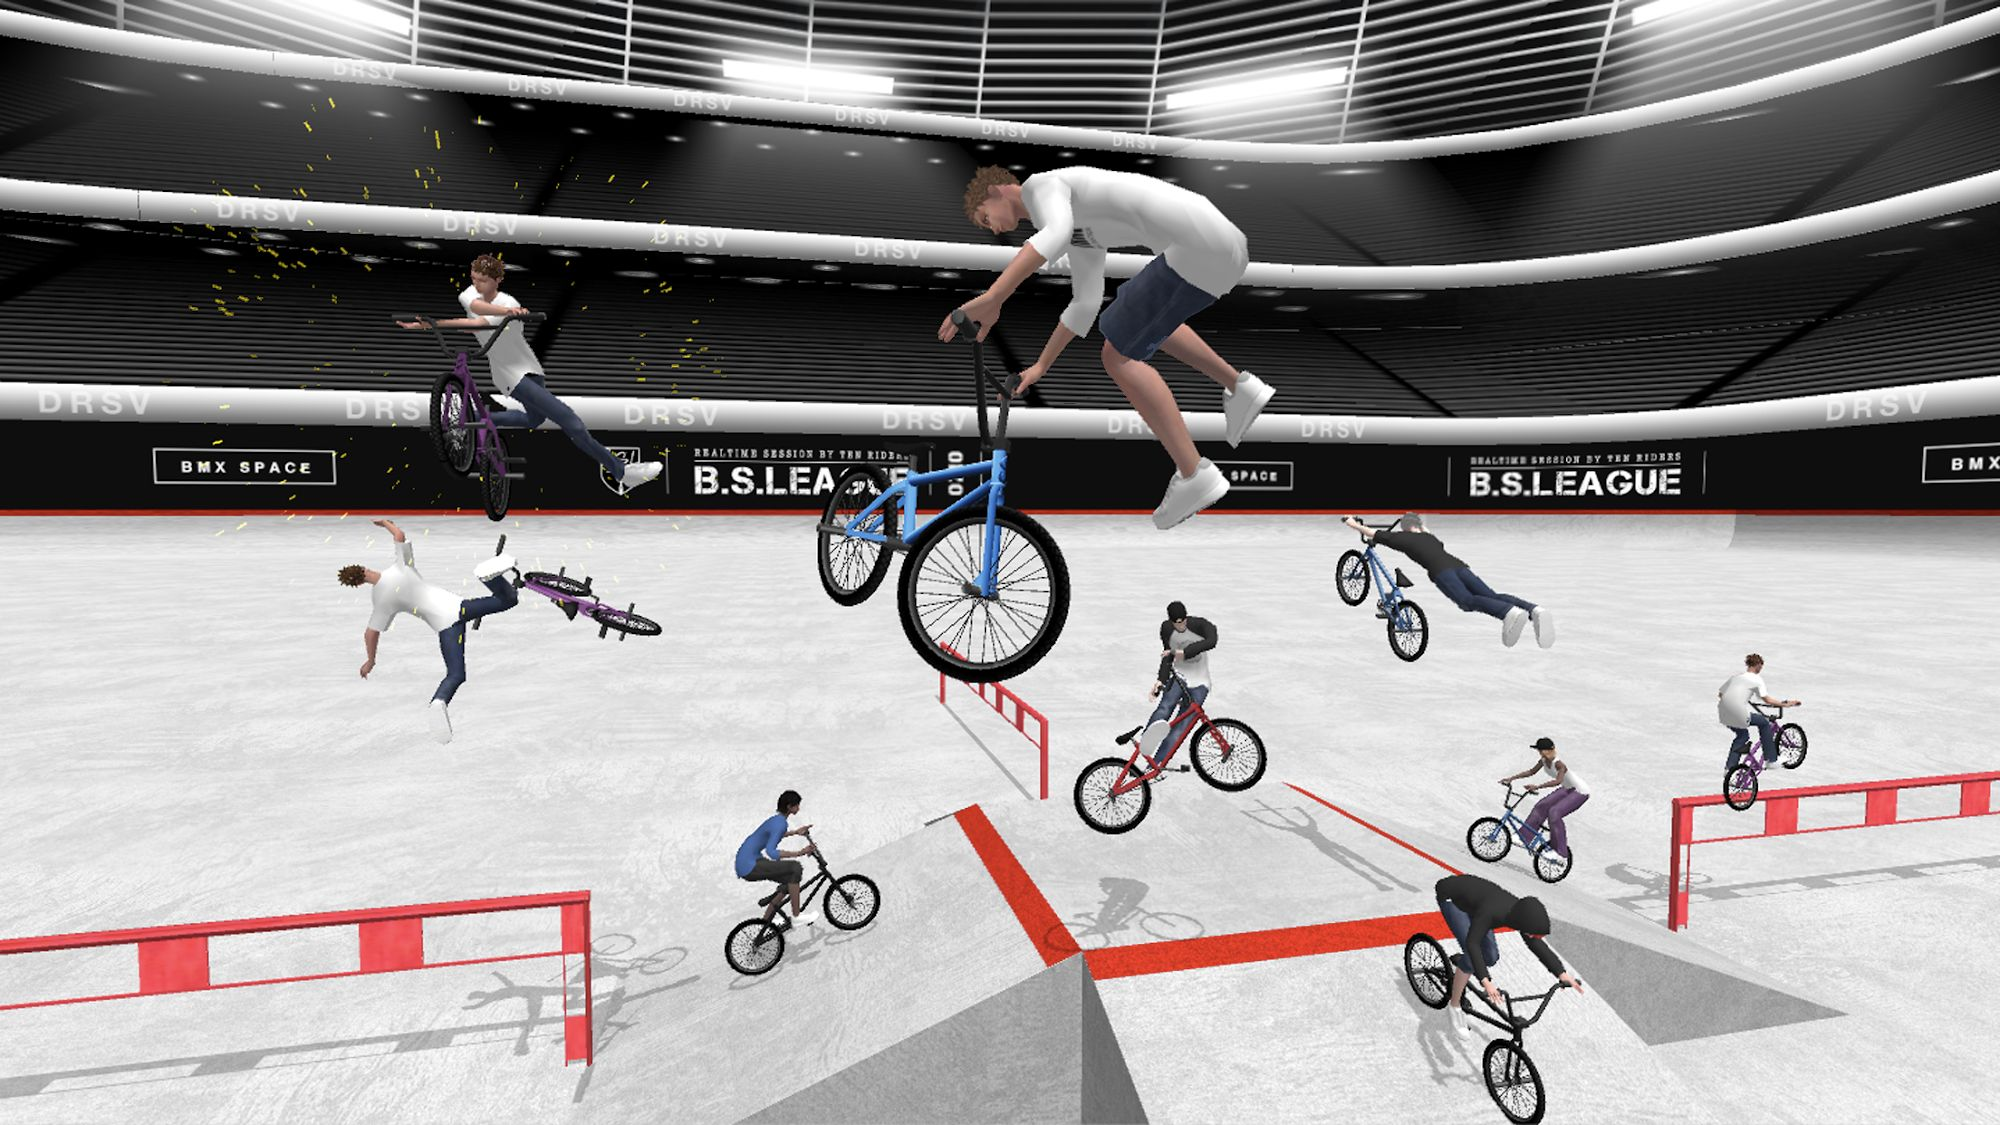 BMX Space captura de tela 1